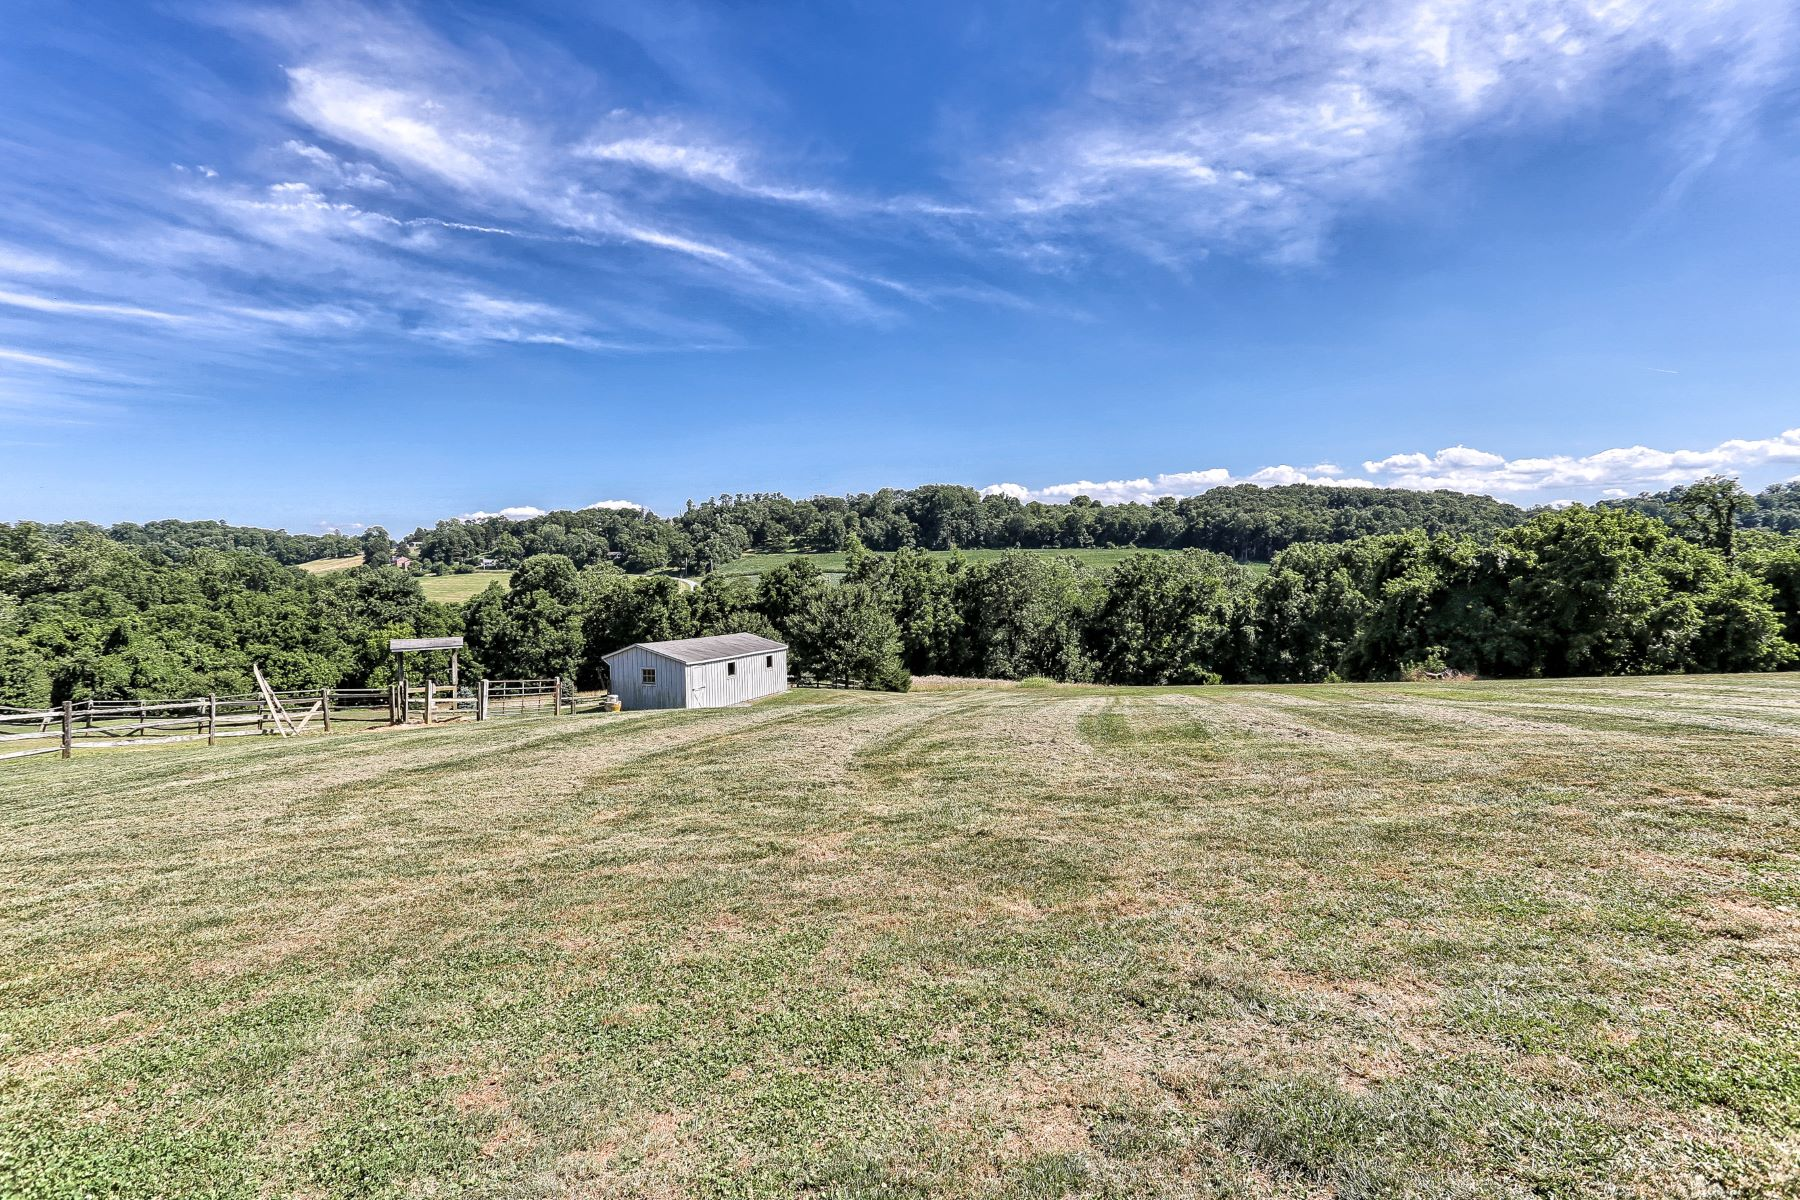 Additional photo for property listing at 380 Rineer Road 380 Rineer Road Conestoga, Pennsylvania 17516 United States